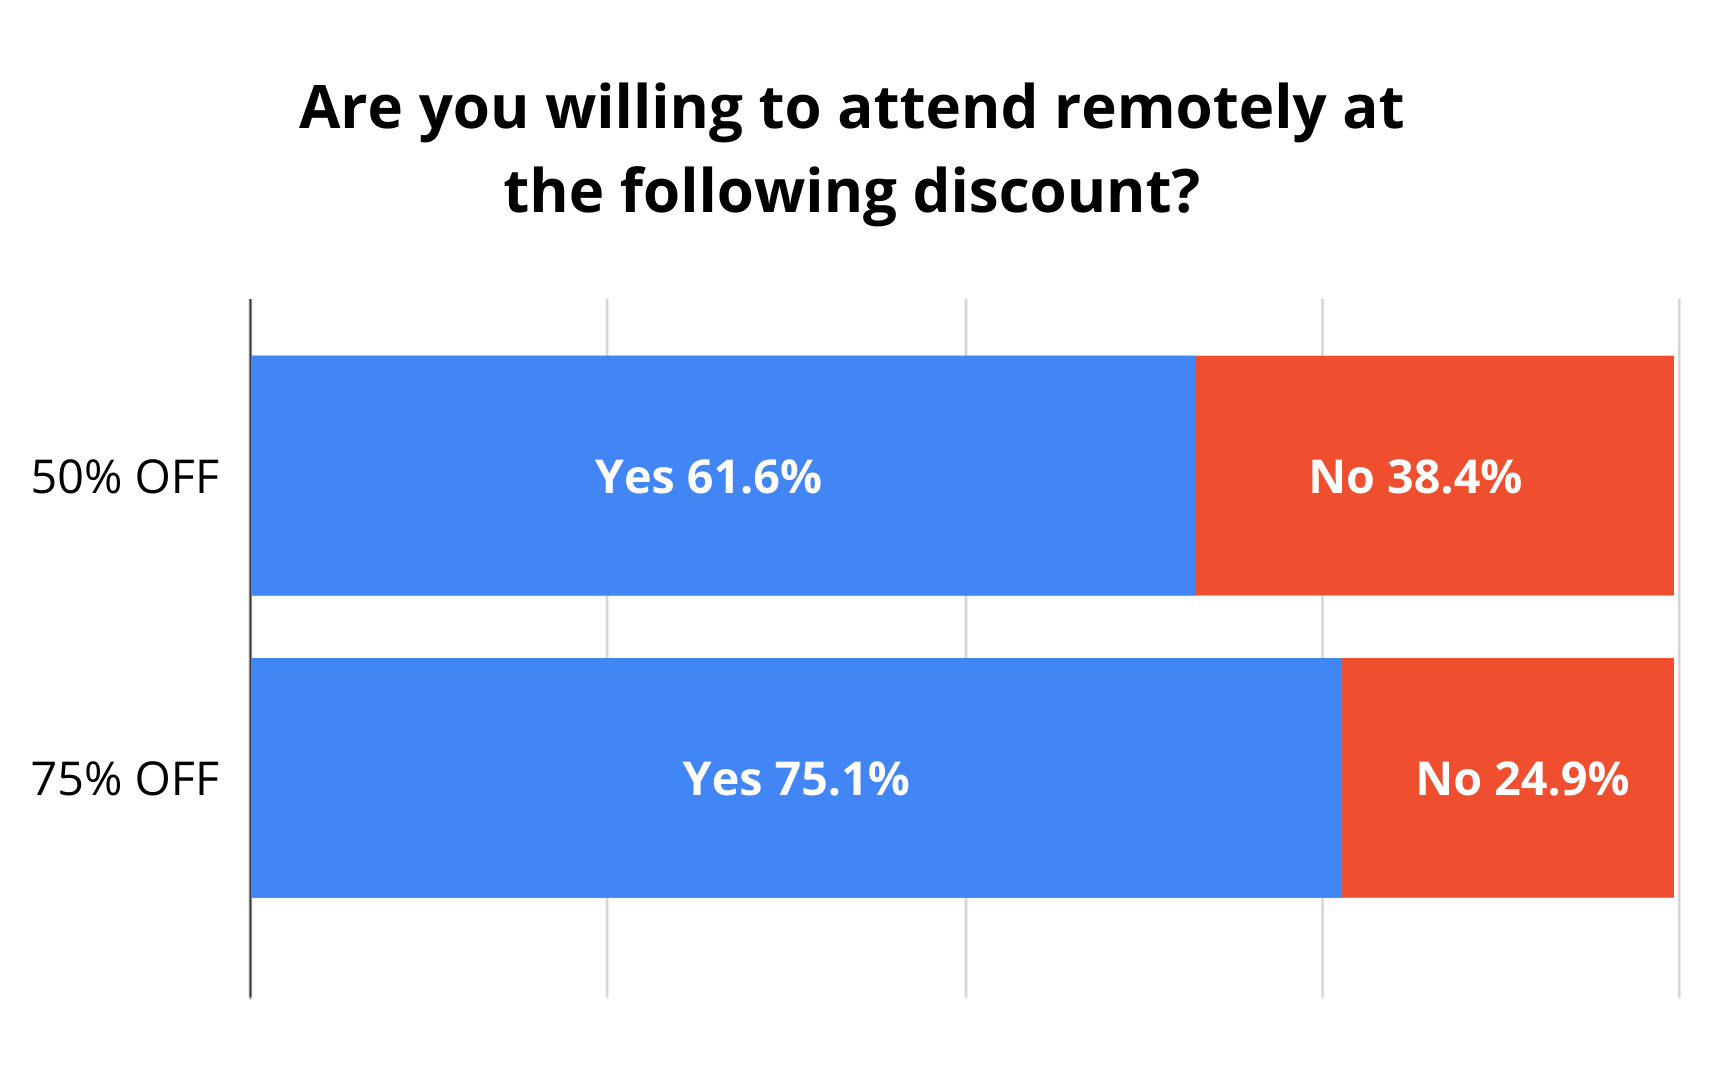 61.6% of attendees would be willing to attend remotely for 50% off, which 75.1% of attendees would be willing to attend remotely at 75% off